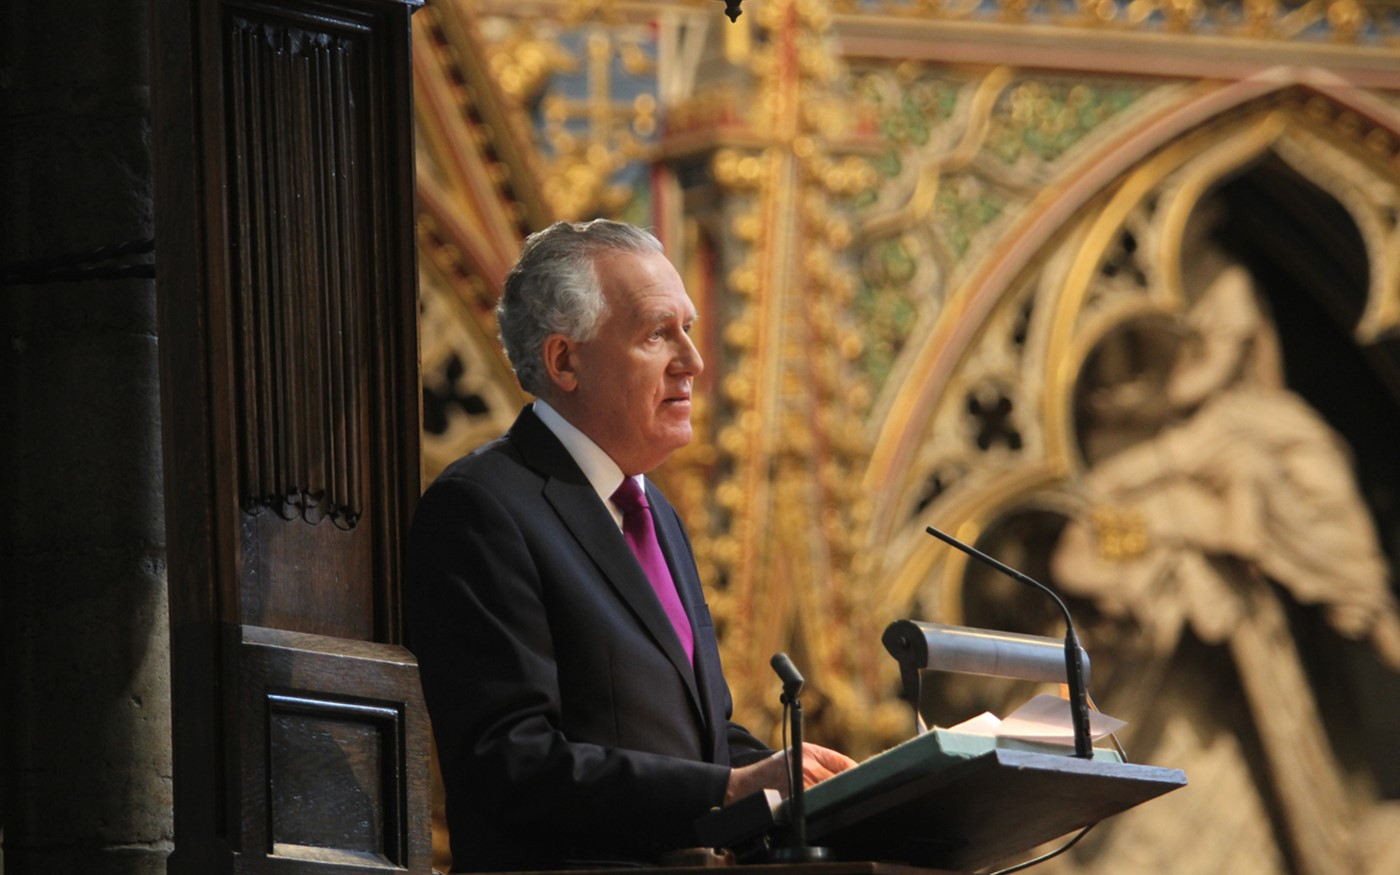 Peter Hain MP gives a Tribute